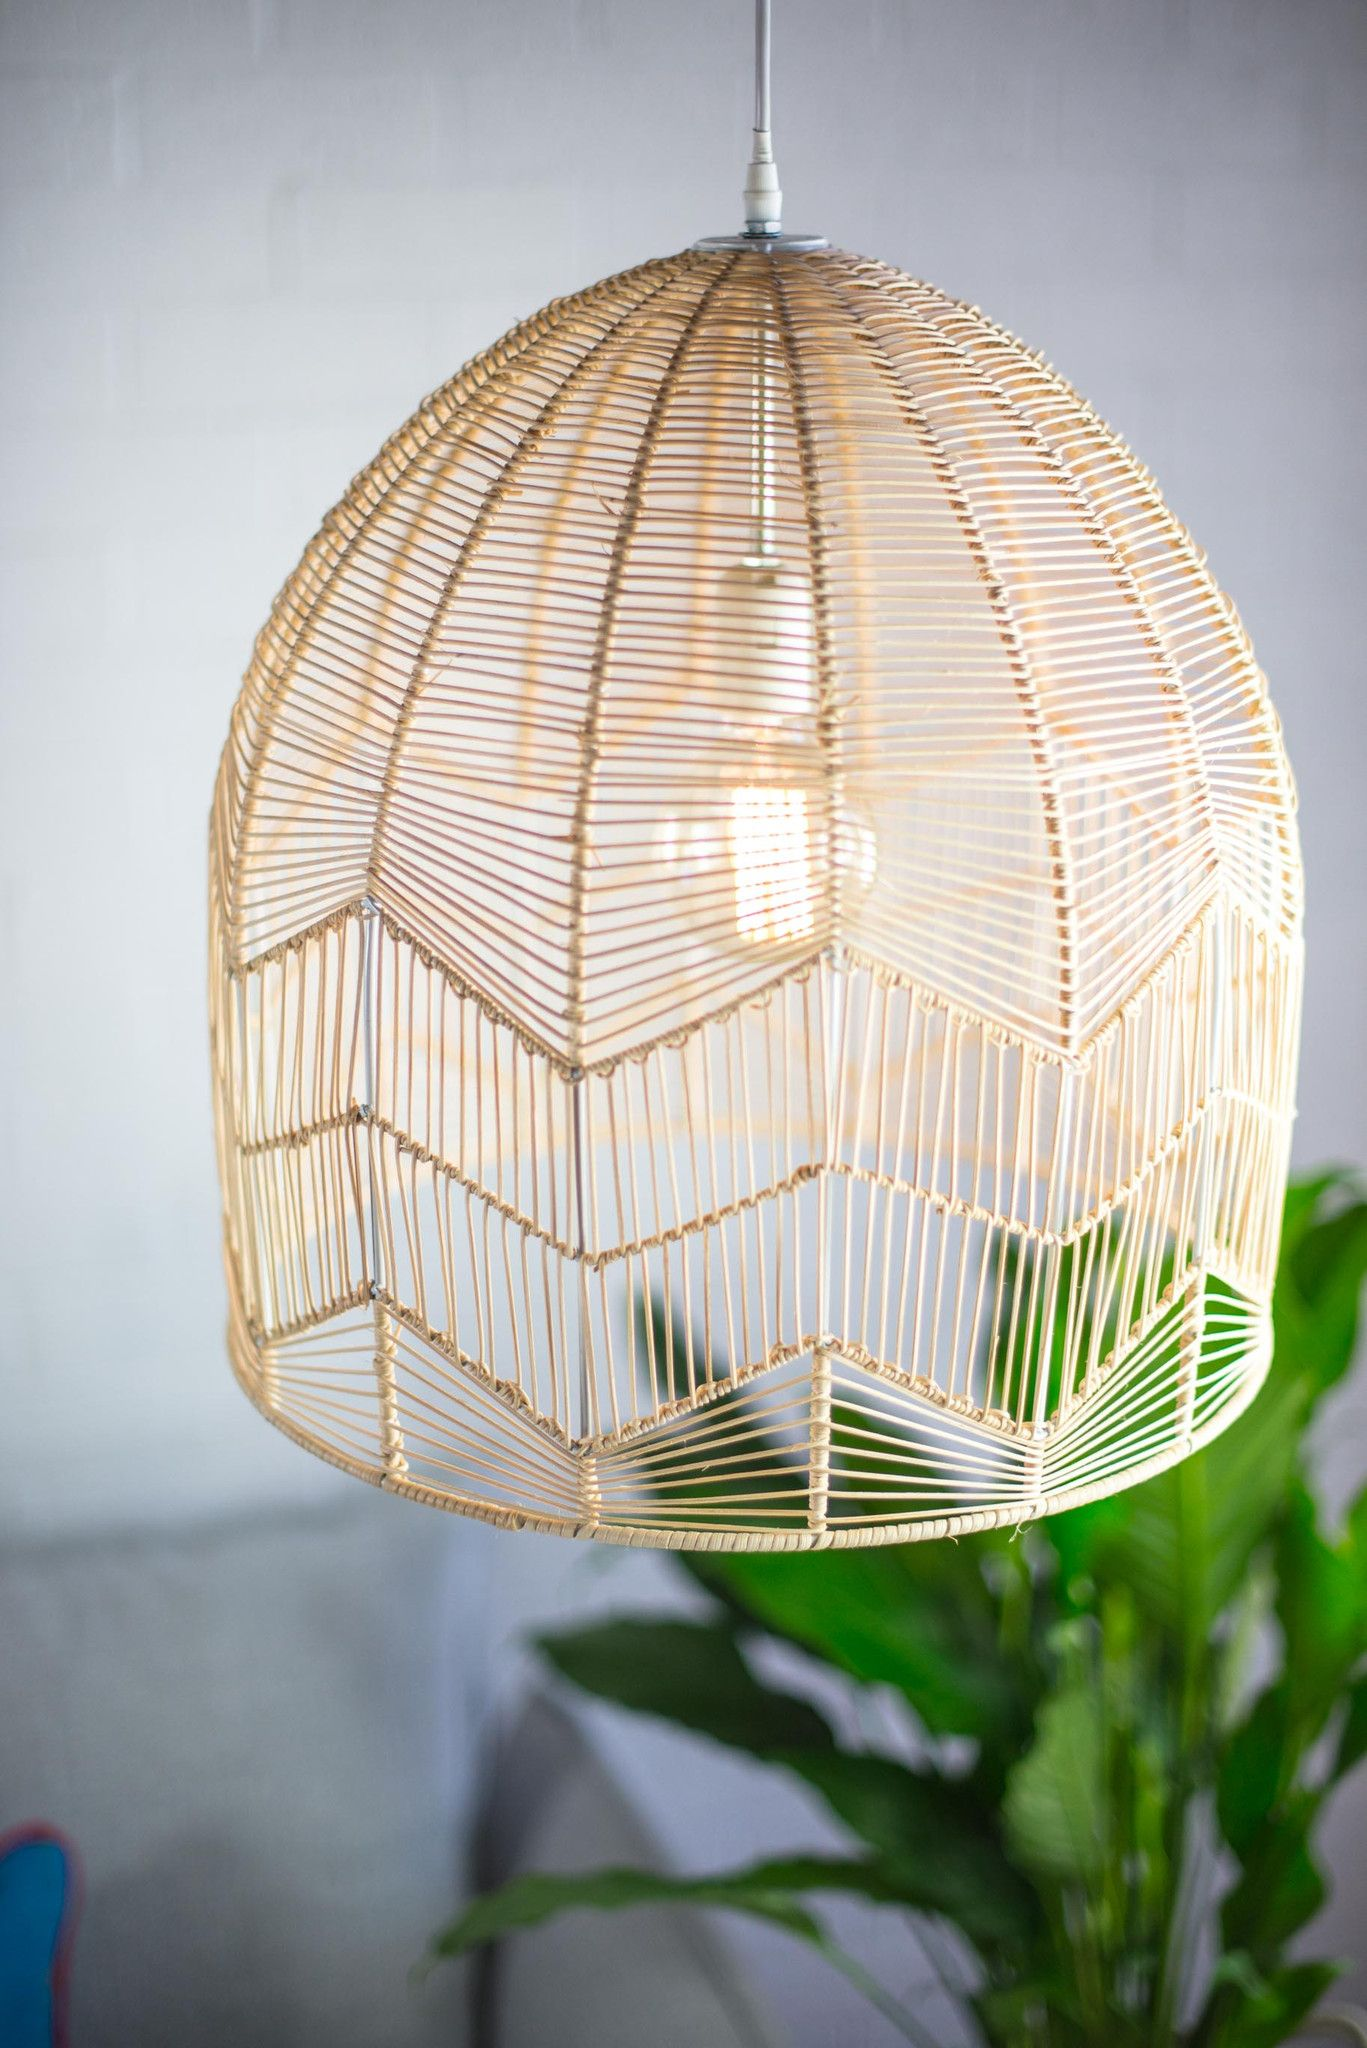 Schlafzimmer Lampe Natur Rattan Lampe